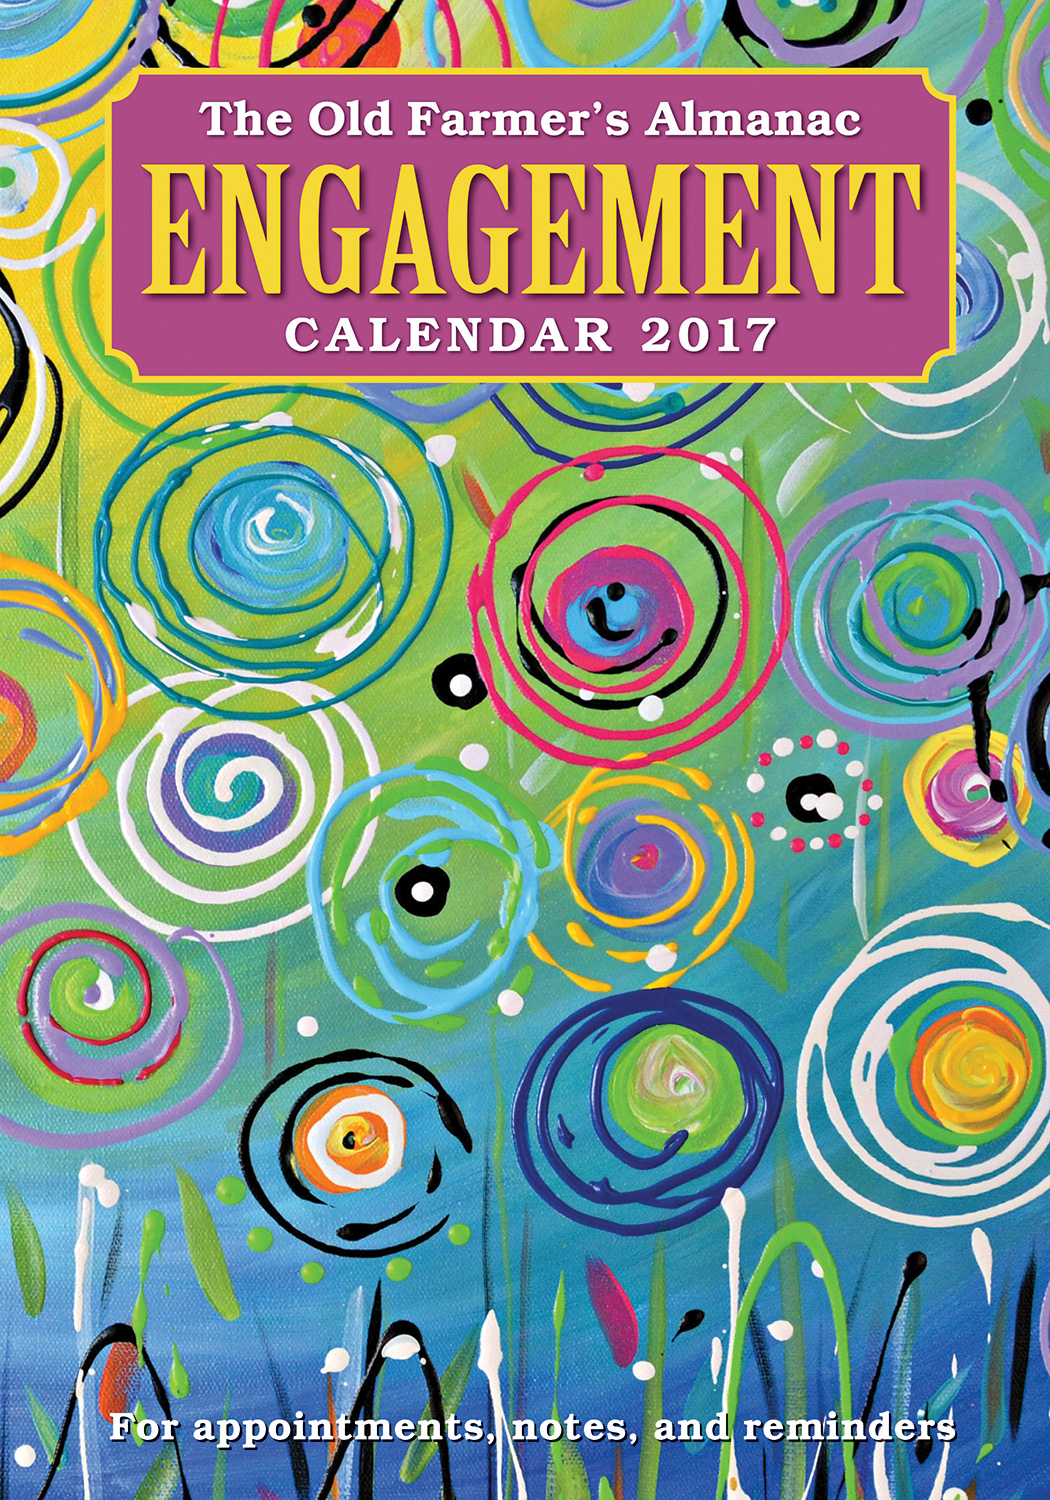 The Old Farmer's Almanac 2017 Engagement Calendar-9781571987143